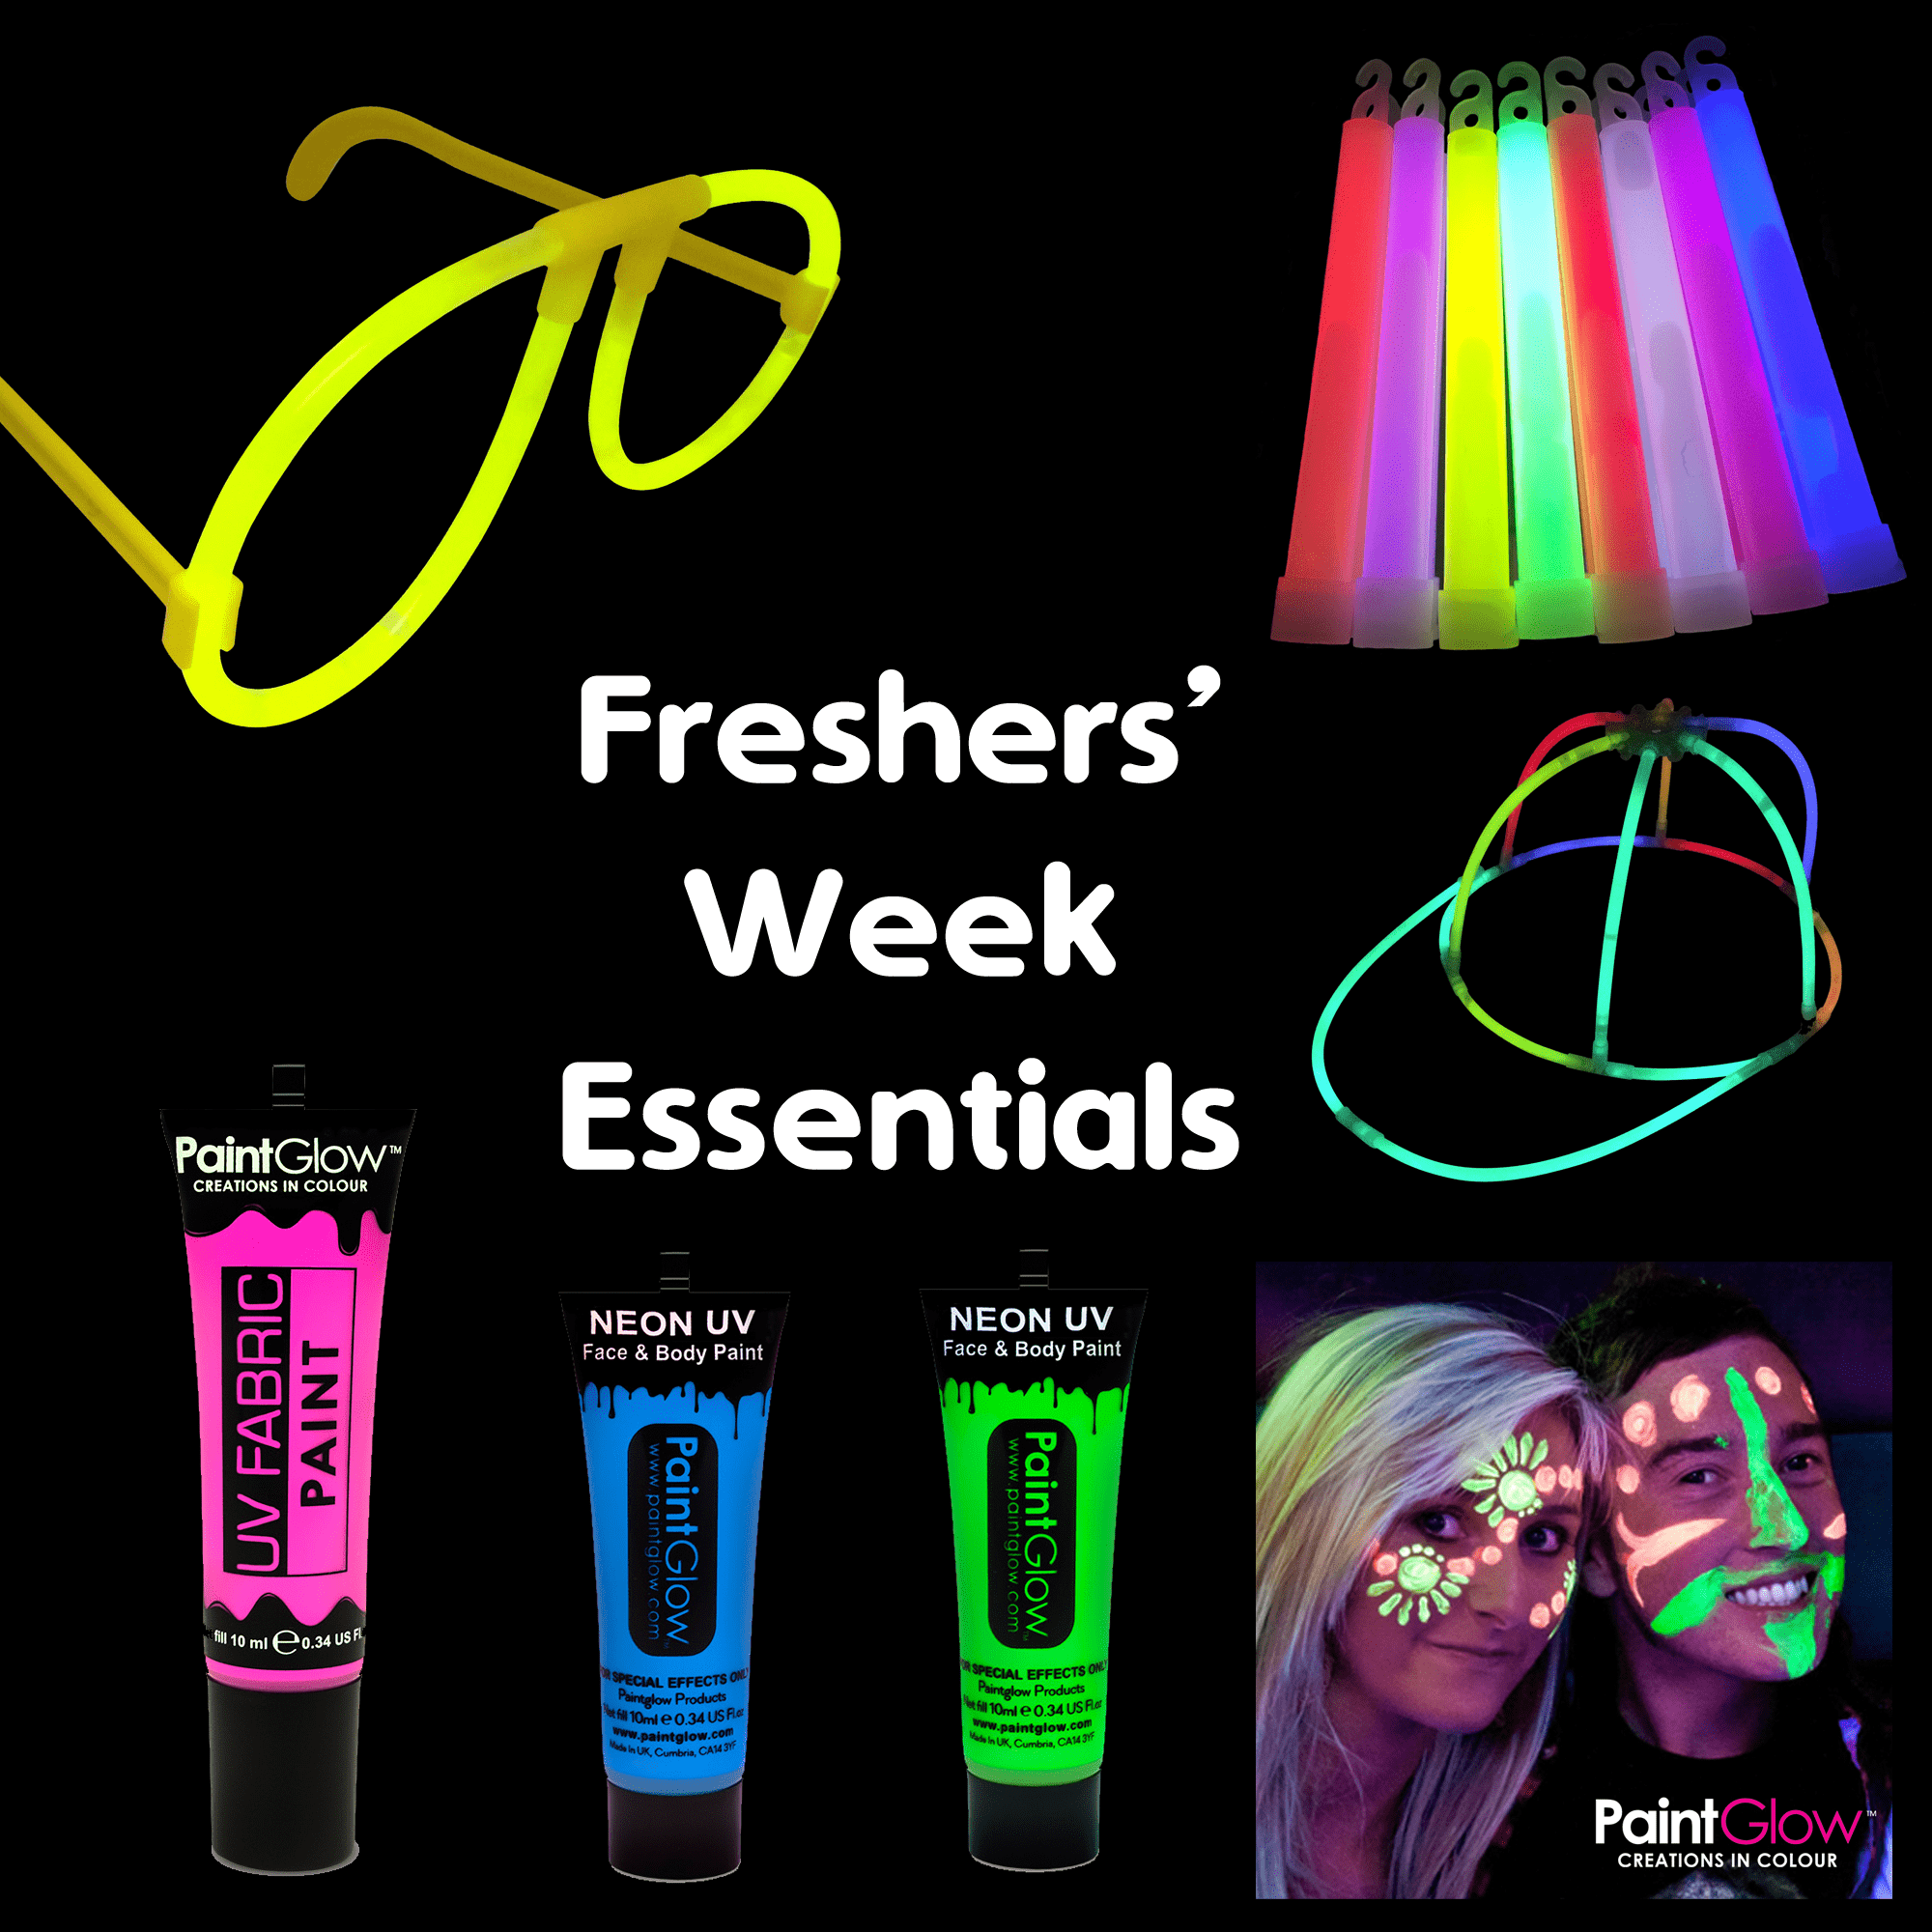 Freshers' Week Glow in the Dark Pack